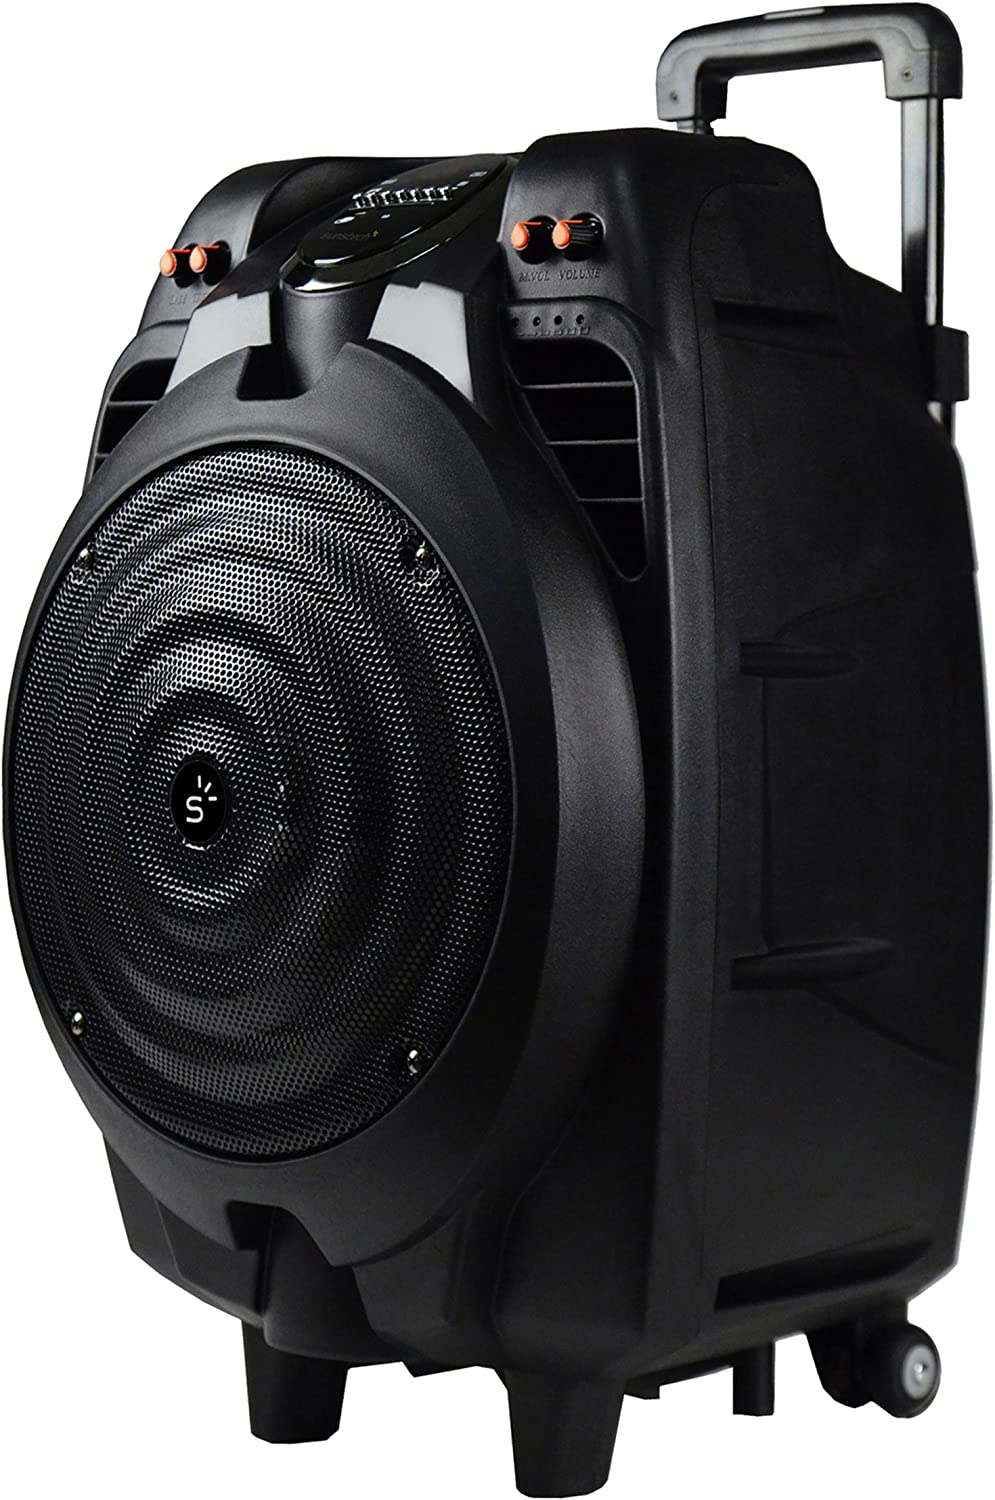 Sunstech MASSIVE-S10, Altavoz Móvil con Bluetooth (50 W, Usb, Incluye Mando A Distancia), Inalámbrico y alámbrico^Bluetooth/3.5mm/USB, Talla única, Negro